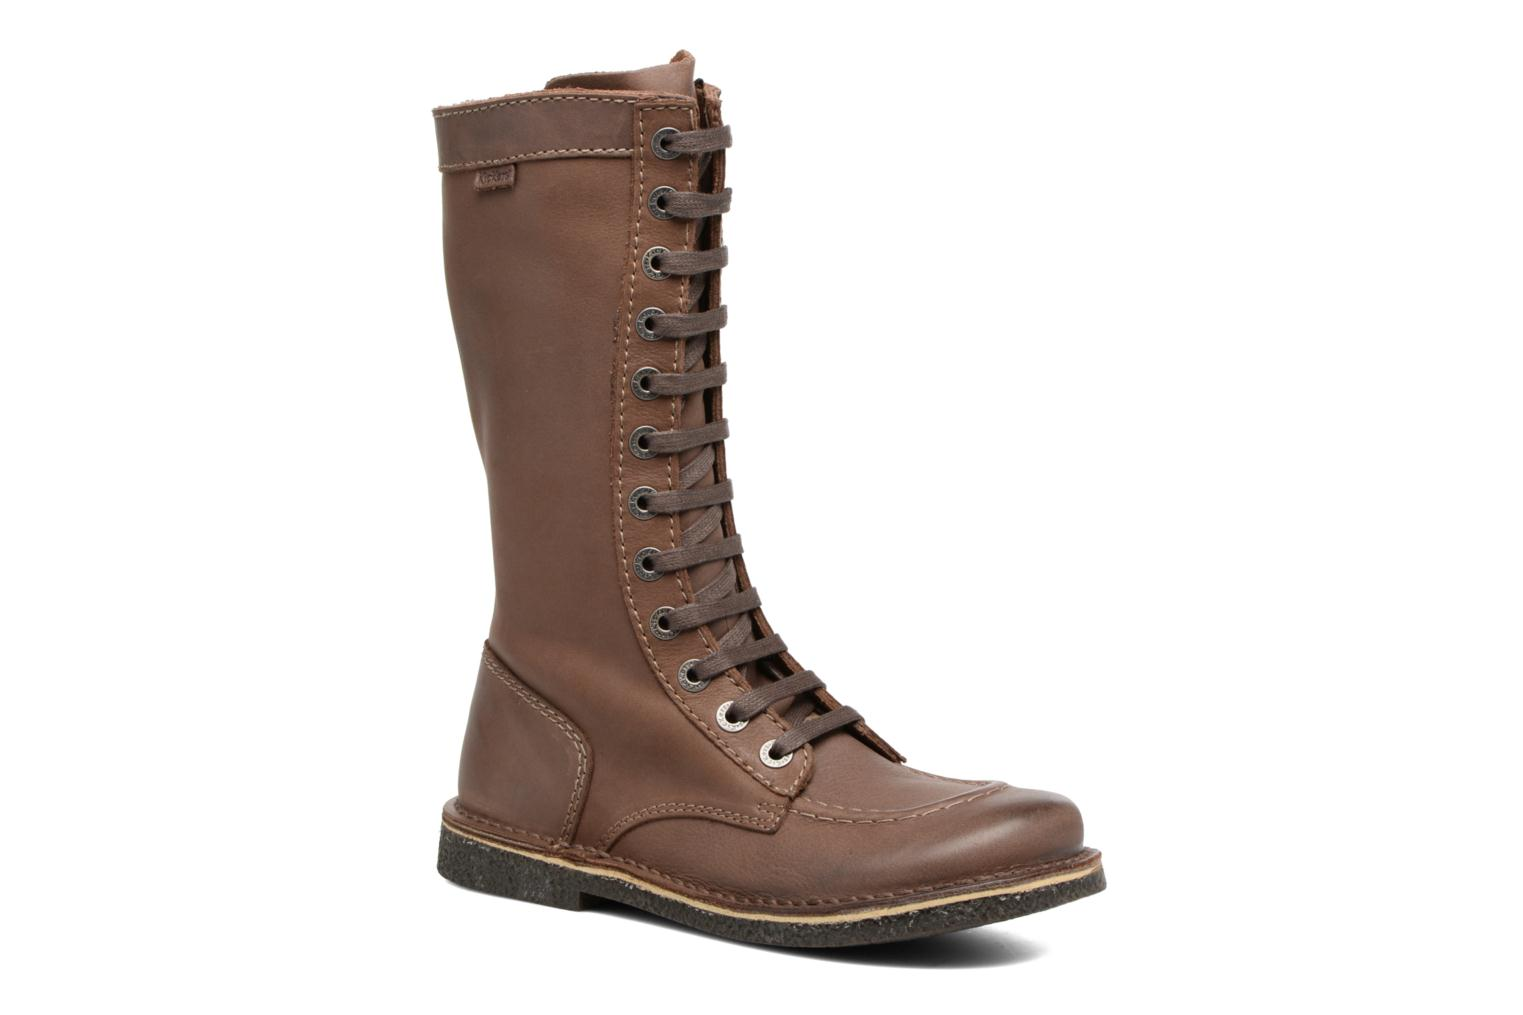 Bottines et boots Kickers Meetkiknew Marron vue détail/paire